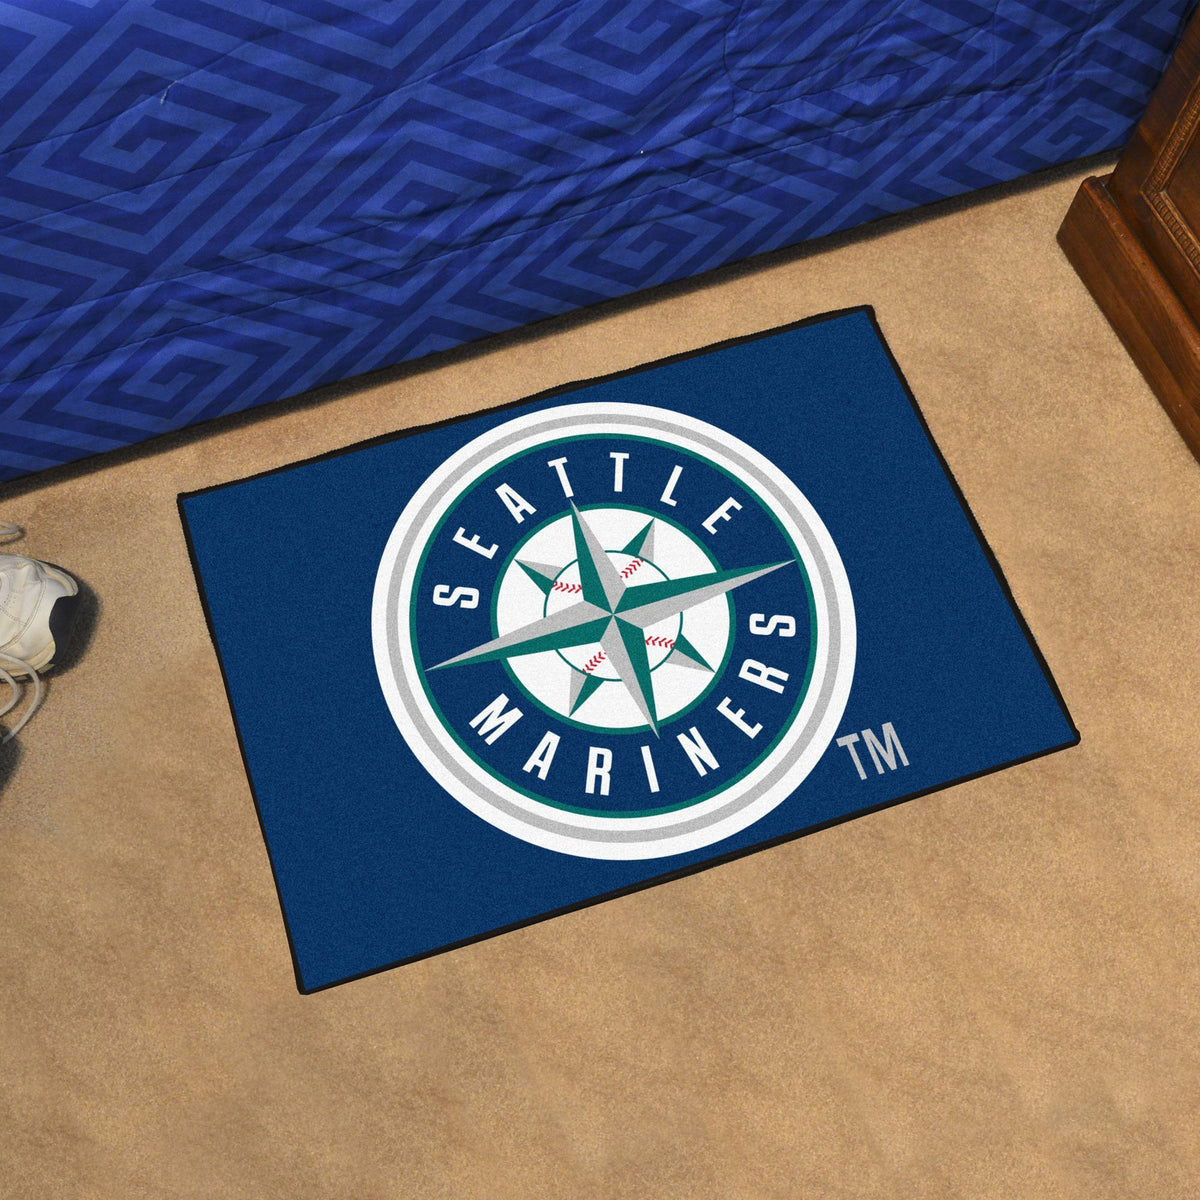 MLB - Starter Mat MLB Mats, Rectangular Mats, Starter Mat, MLB, Home Fan Mats Seattle Mariners